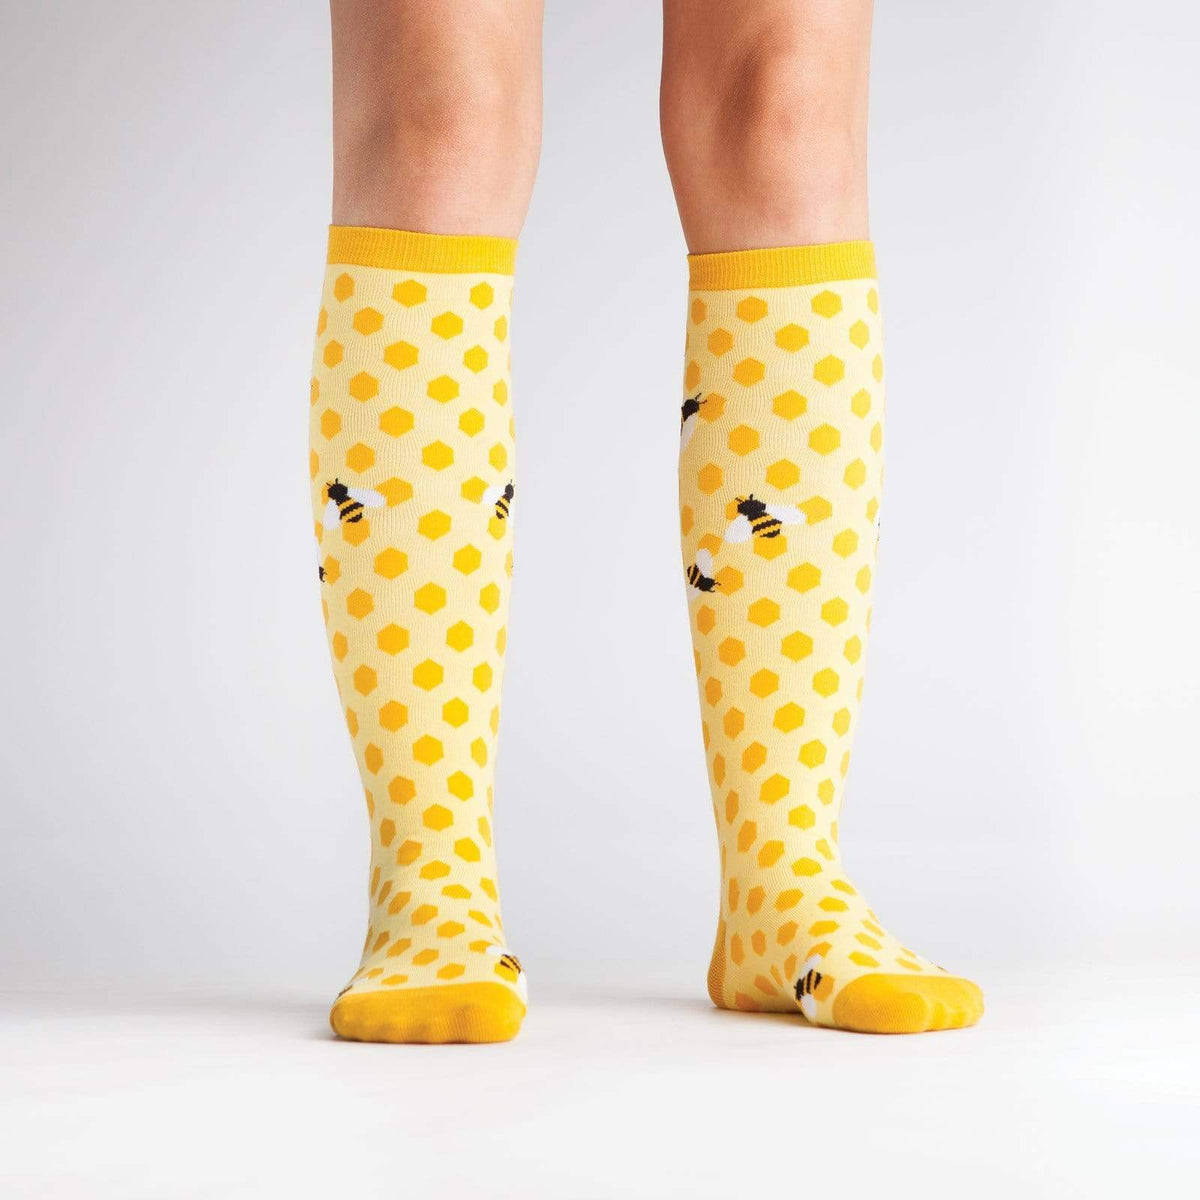 Bee's Knees Knee High Socks model